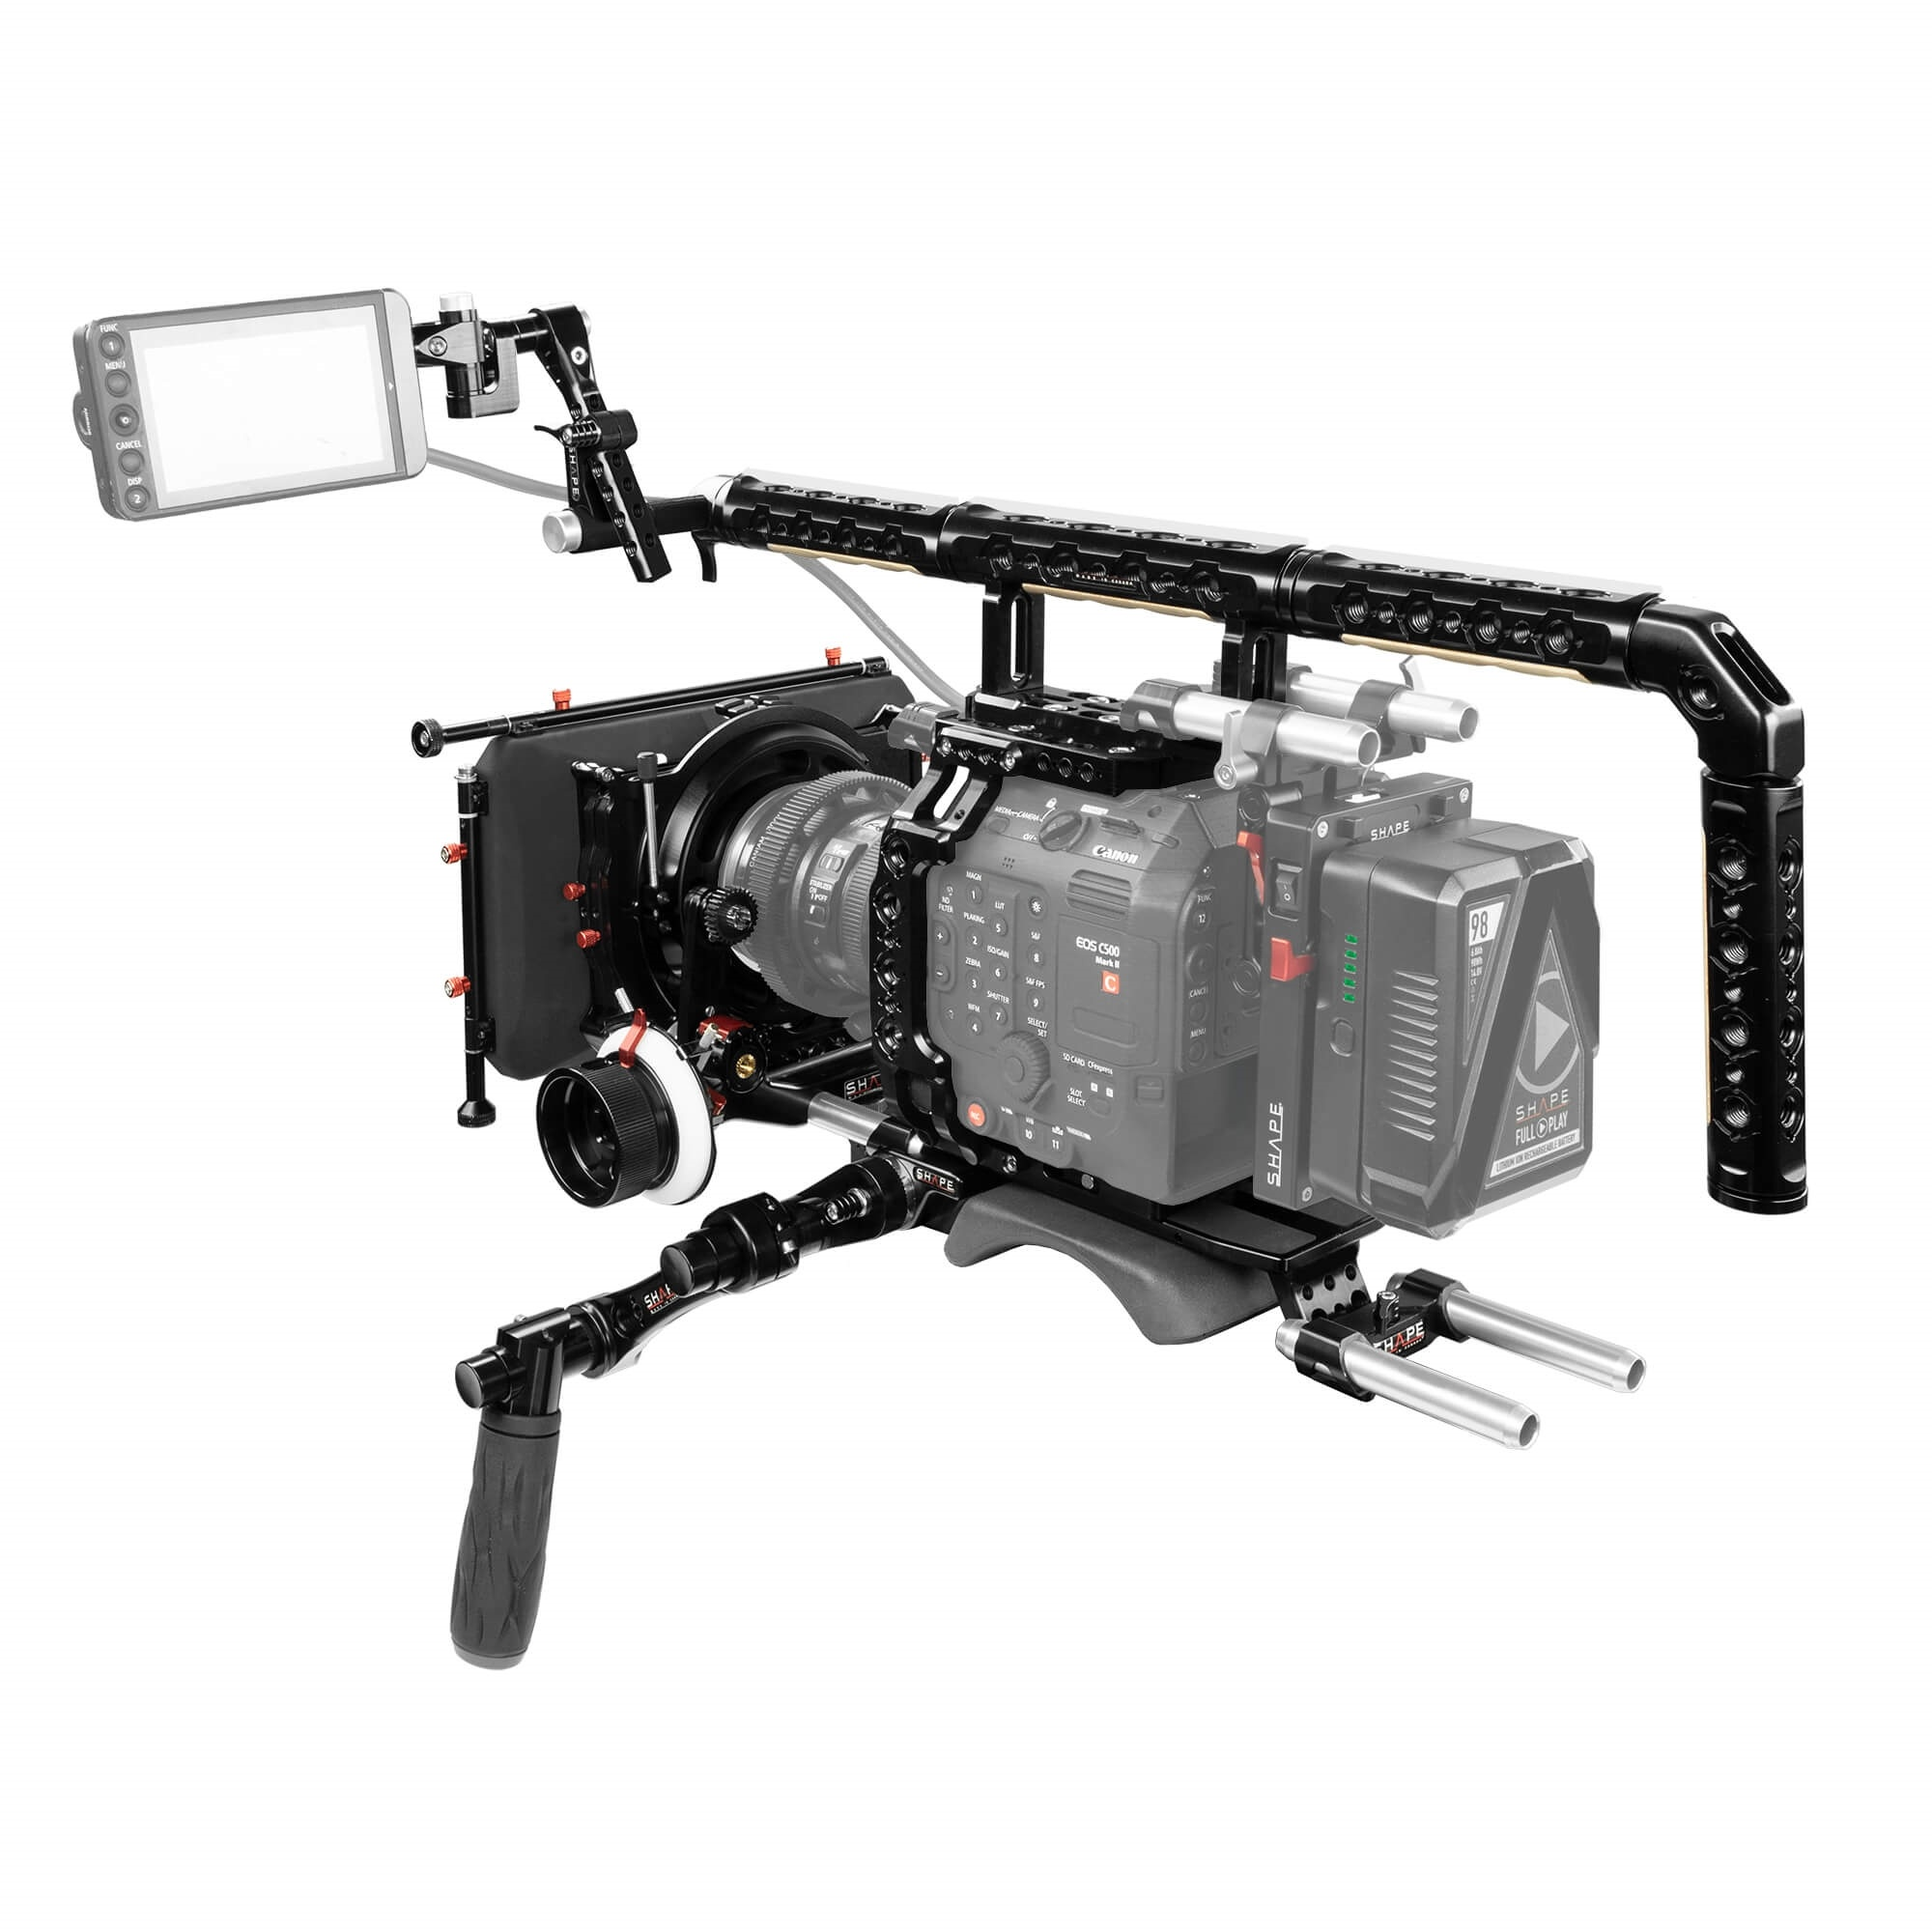 "SHAPE Canon C500 Mark II Baseplate w/ Cage, Top Handle Long VF, 4 x 5.6"" Matte Box, Follow Focus Pro"